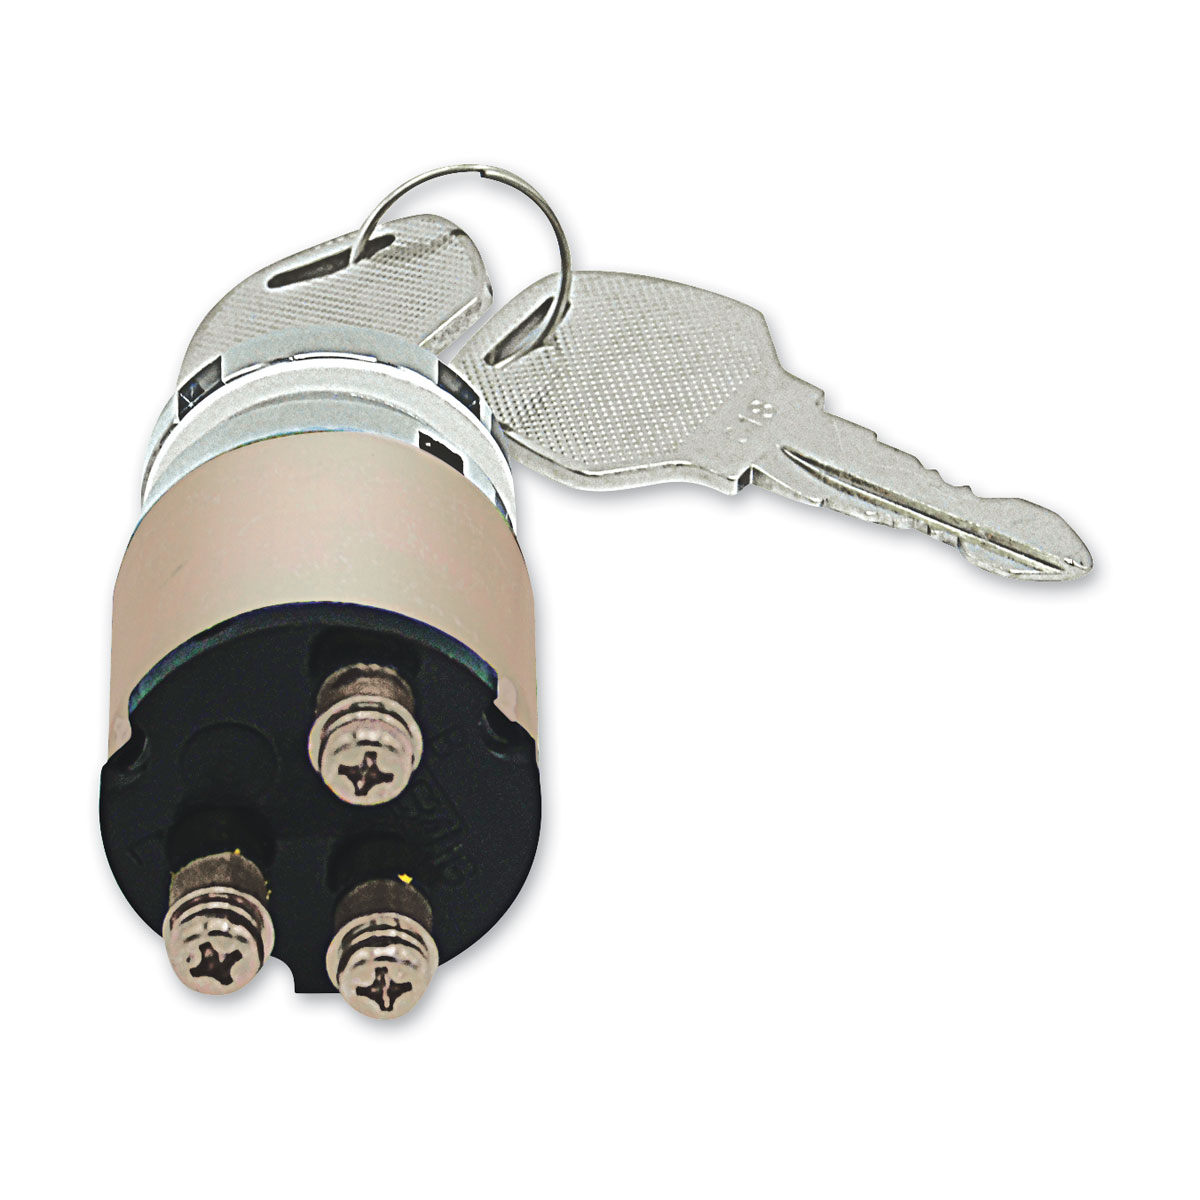 Vintage Harley-Davidson Ignition Switches   J&P Cycles